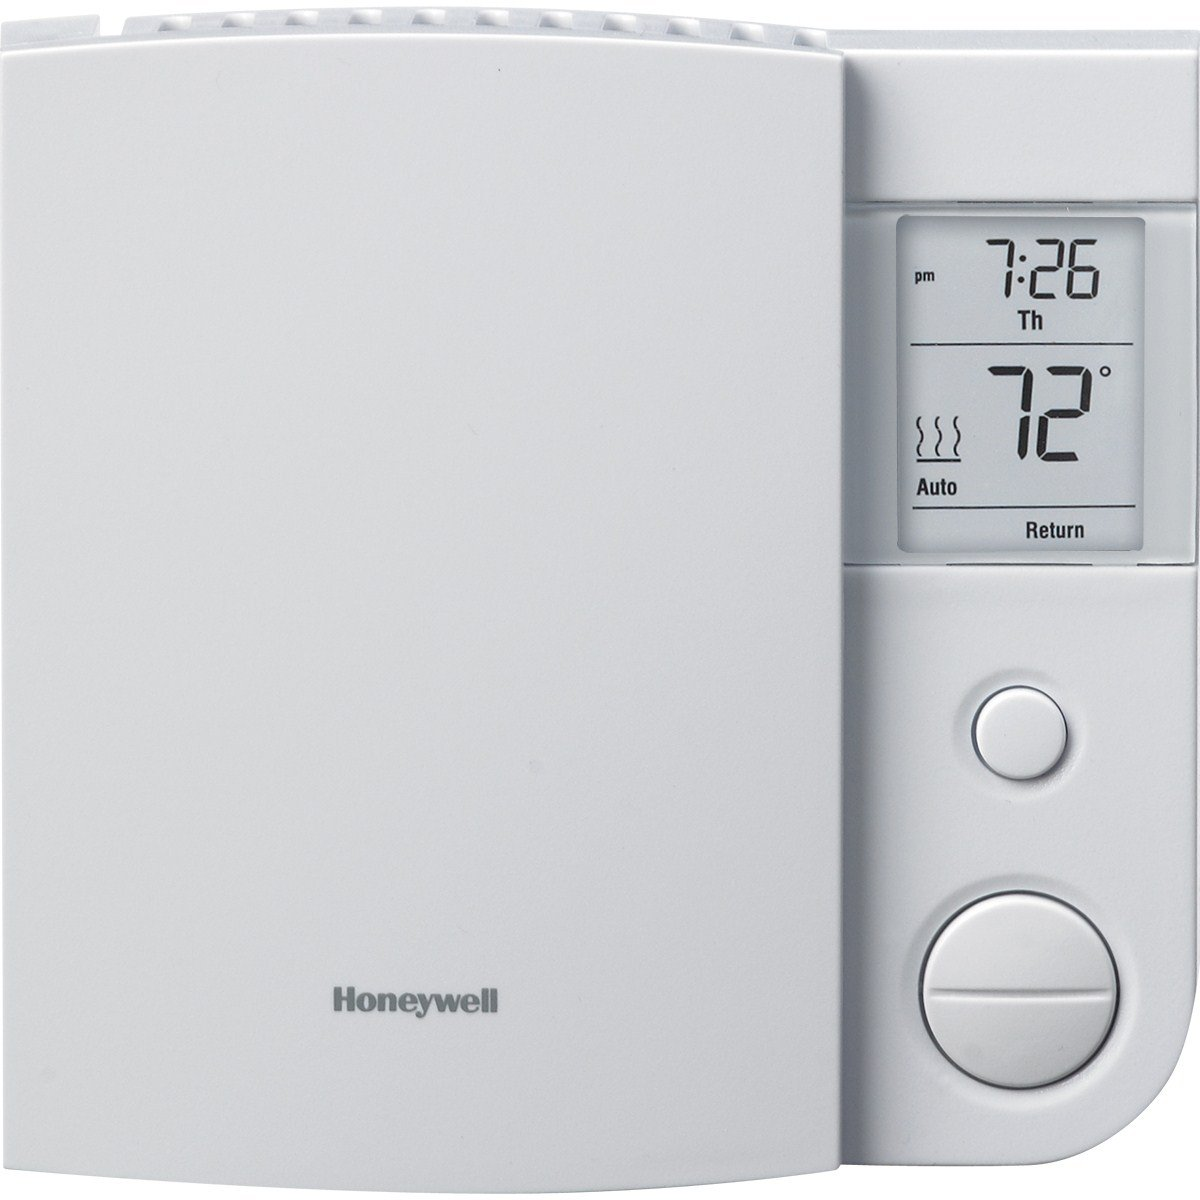 Details about Honeywell RLV4305A1000/E 5 2 Day Programmable Thermostat  #5F666C